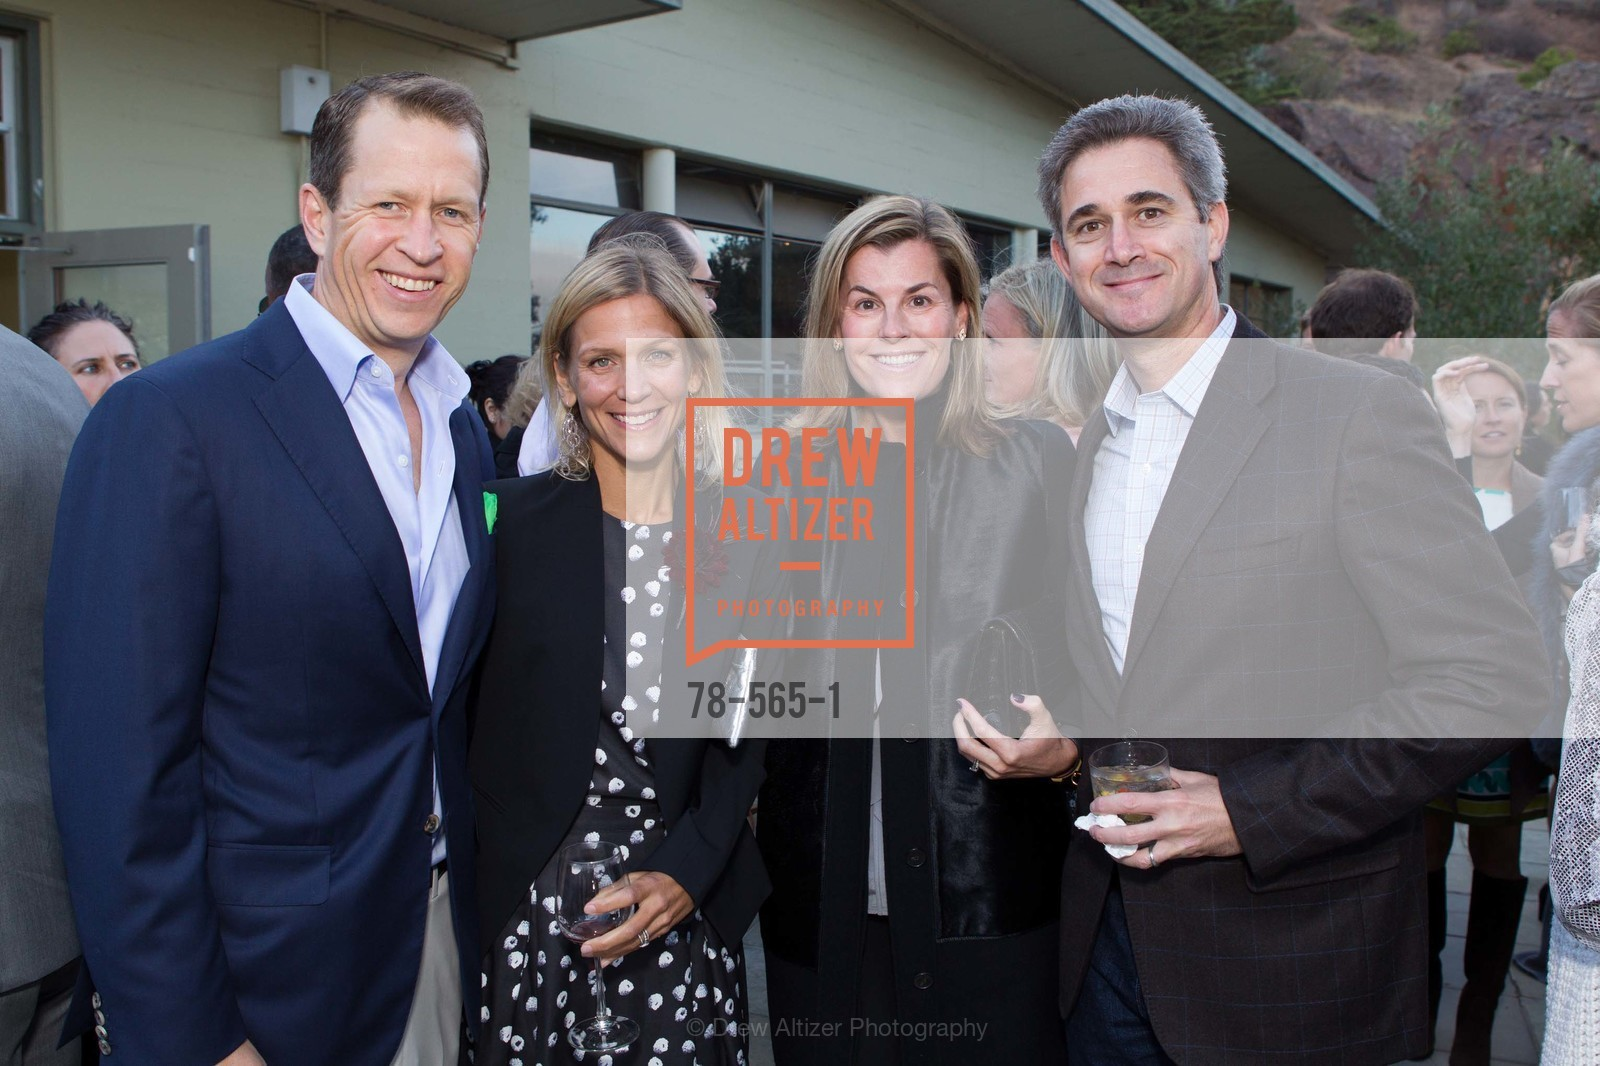 Stewart Barry, Leith Barry, Meredith Levy, Ezra Levy, GLAAD GALA Kick-Off Party Hosted by SAKS FIFTH AVENUE, Saks Fifth Avenue. 384 Post Street, September 12th, 2014,Drew Altizer, Drew Altizer Photography, full-service agency, private events, San Francisco photographer, photographer california